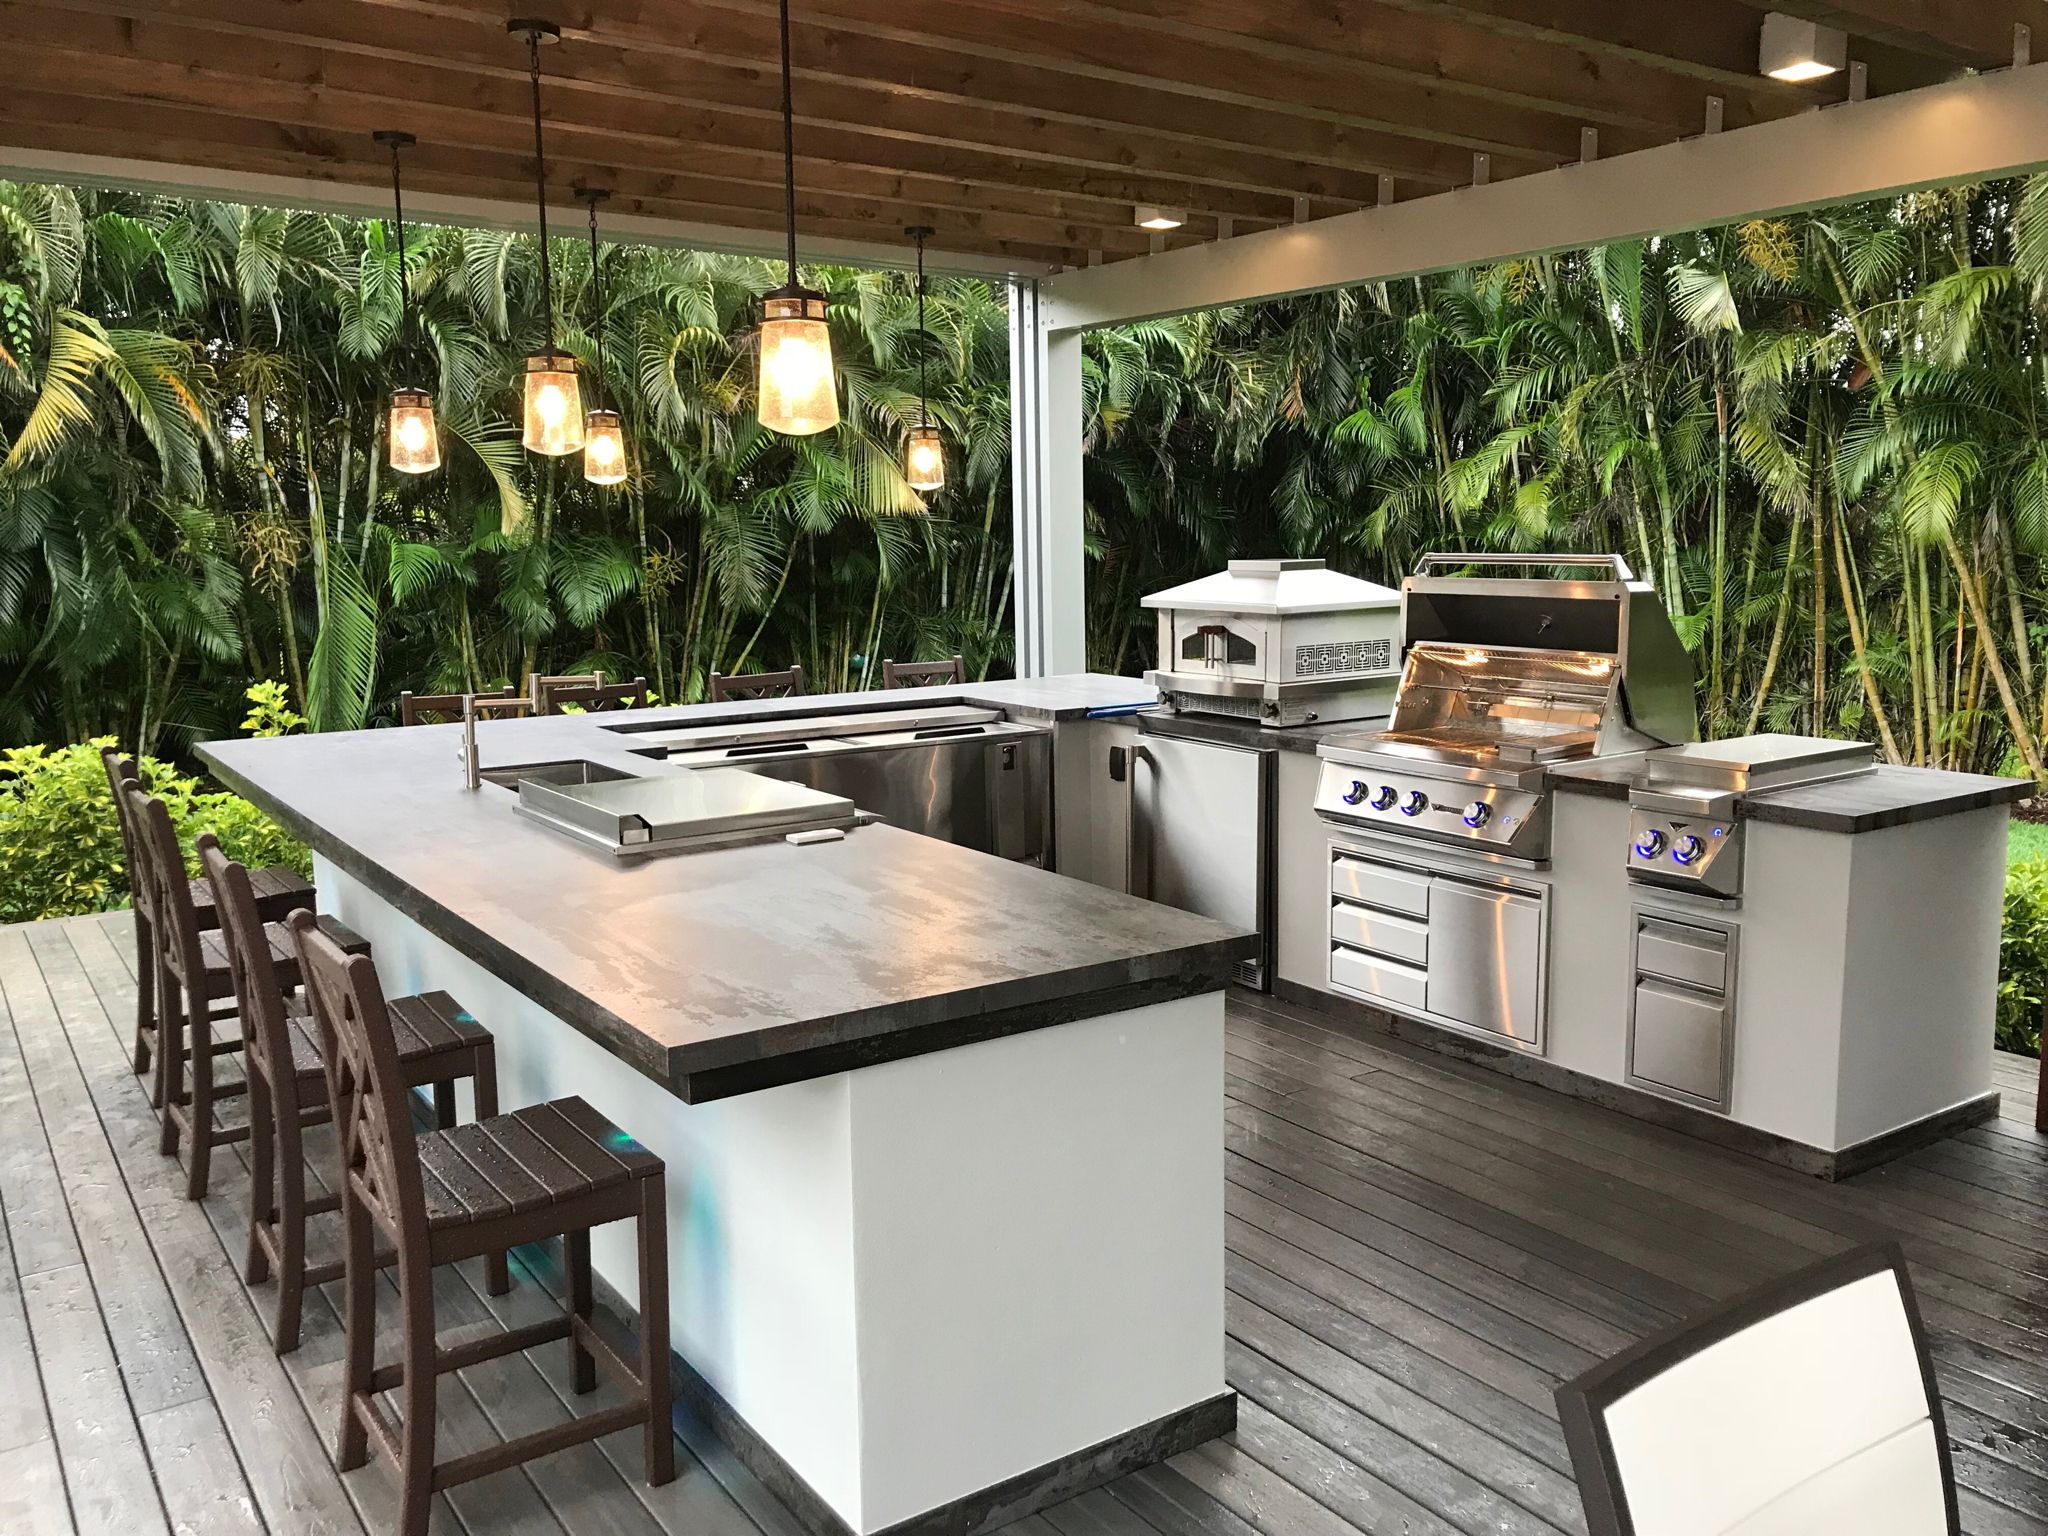 this is a custom outdoor kitchenluxapatio. south